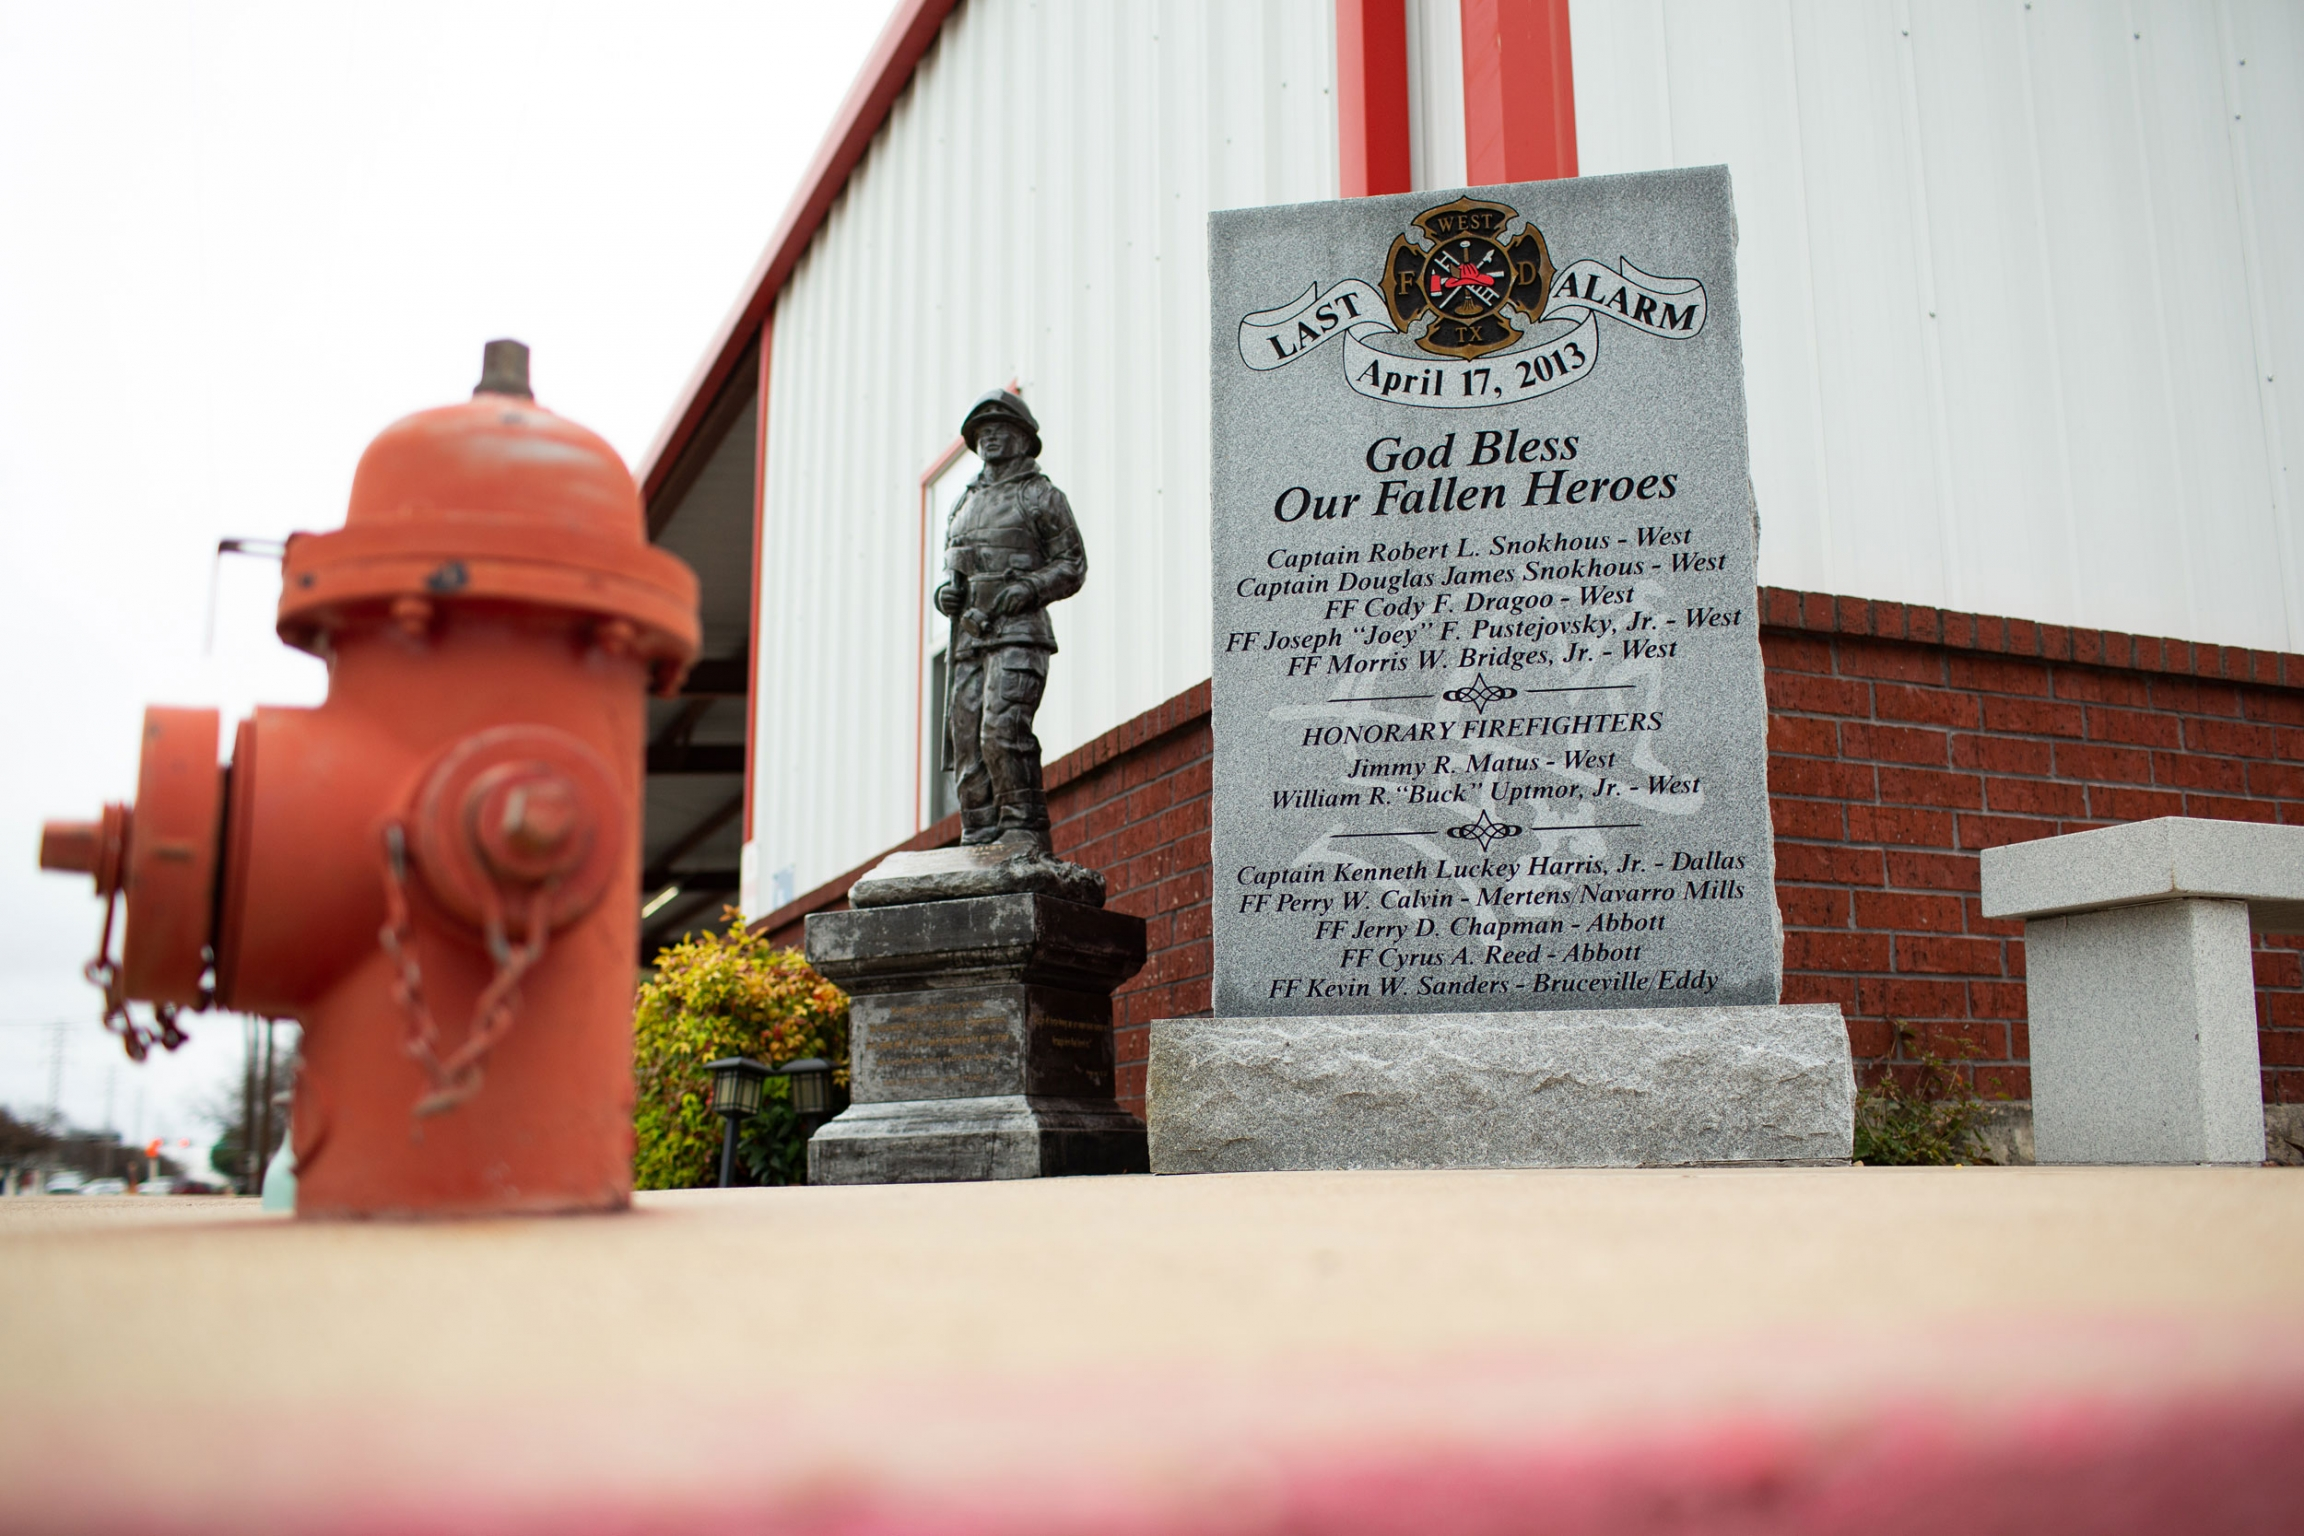 A statue of a fireman is next to a red fire hydrant.